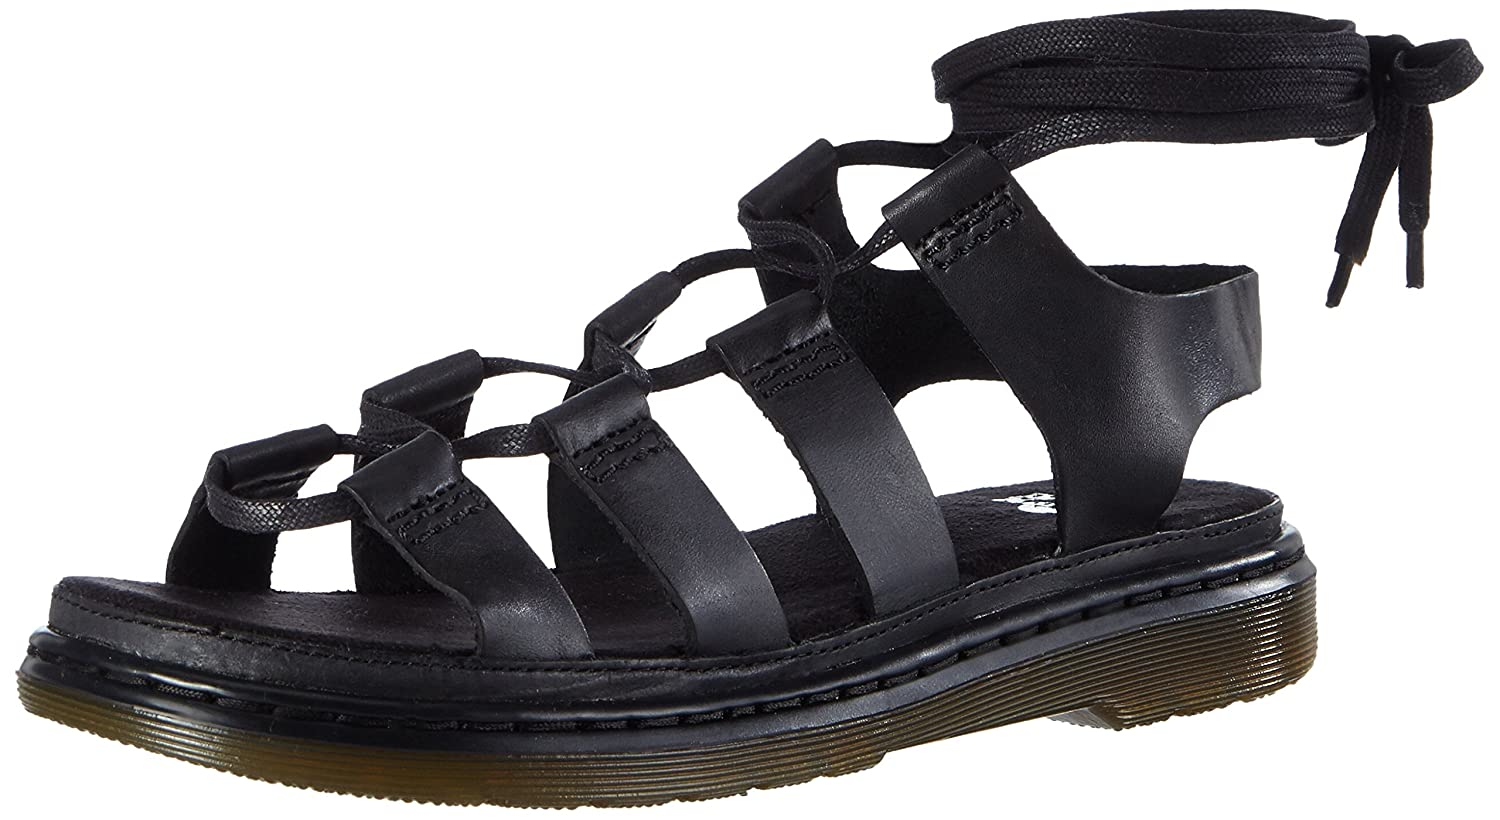 1cd11a0cdb3 Dr. Martens Women s Kristina Oily Illusion Black Roman Sandals Black ...